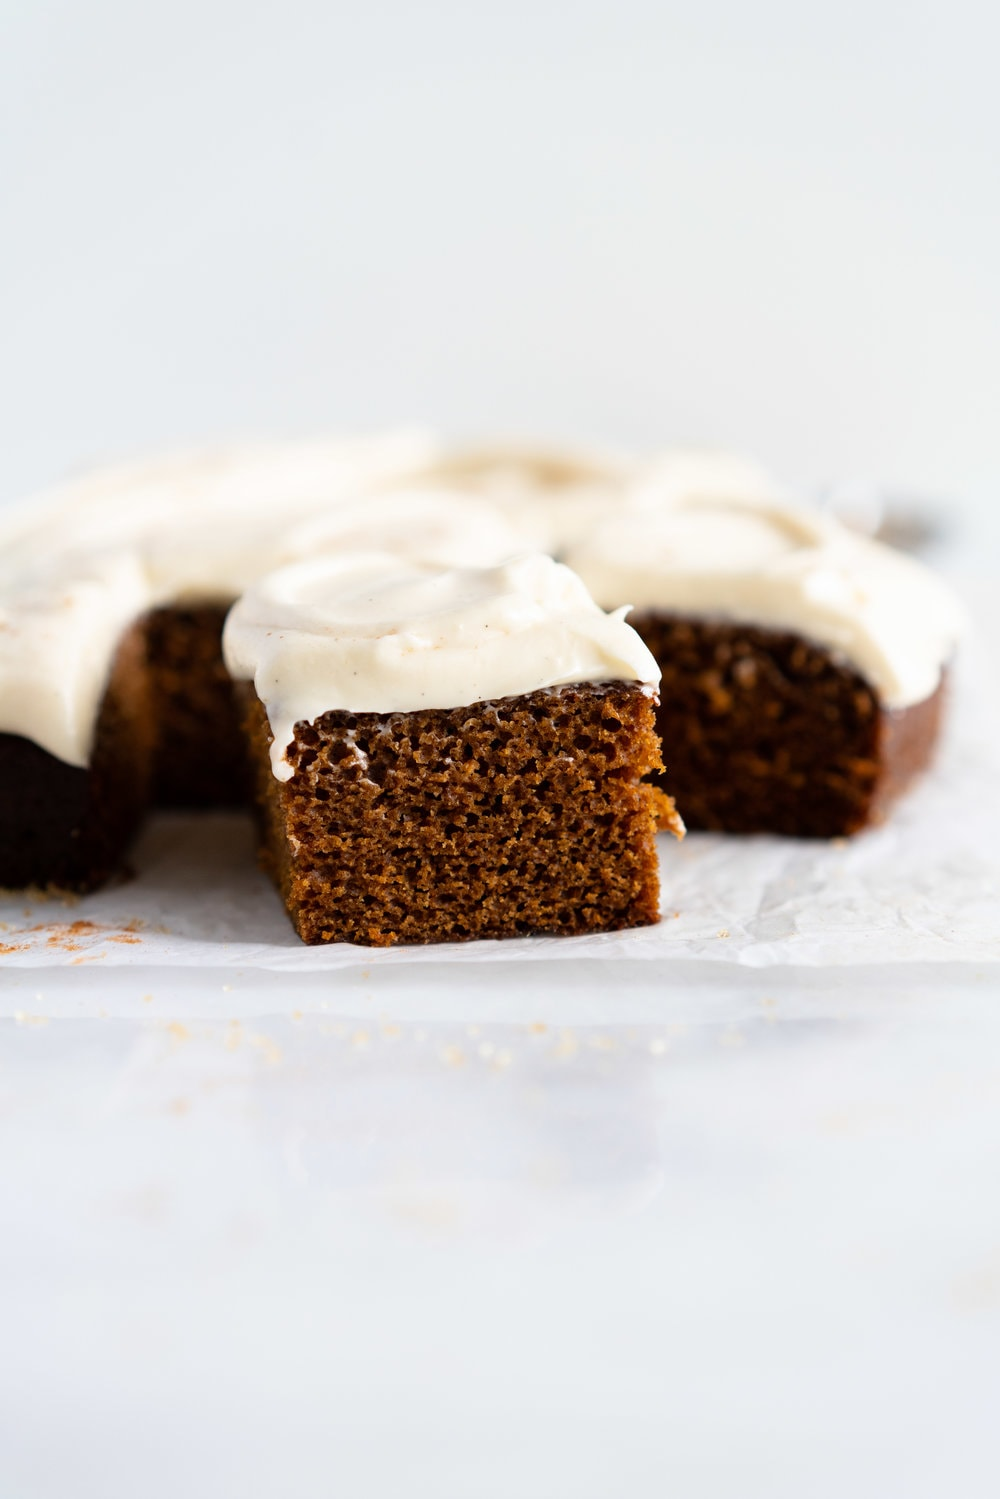 Gingerbread Sheet Cake with Maple Cream Cheese Frosting - a warming spiced cake, topped with a silky, maple, ream cheese frosting. A super simple yet delicious cake, perfect for feeding a crowd or for a quick holiday pick me up.